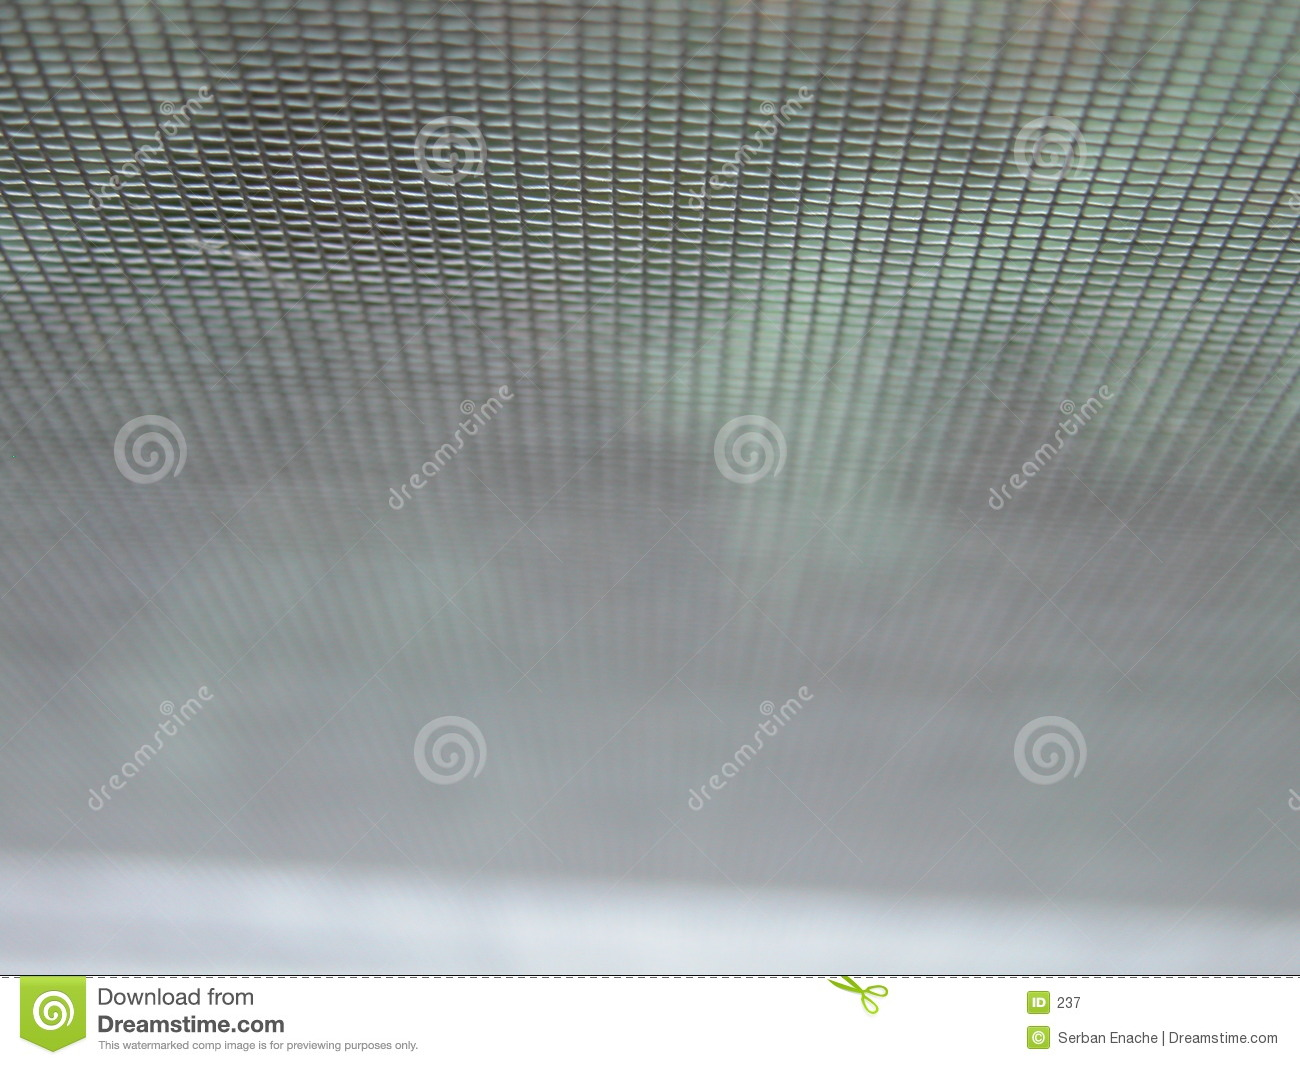 Detail of a wire net